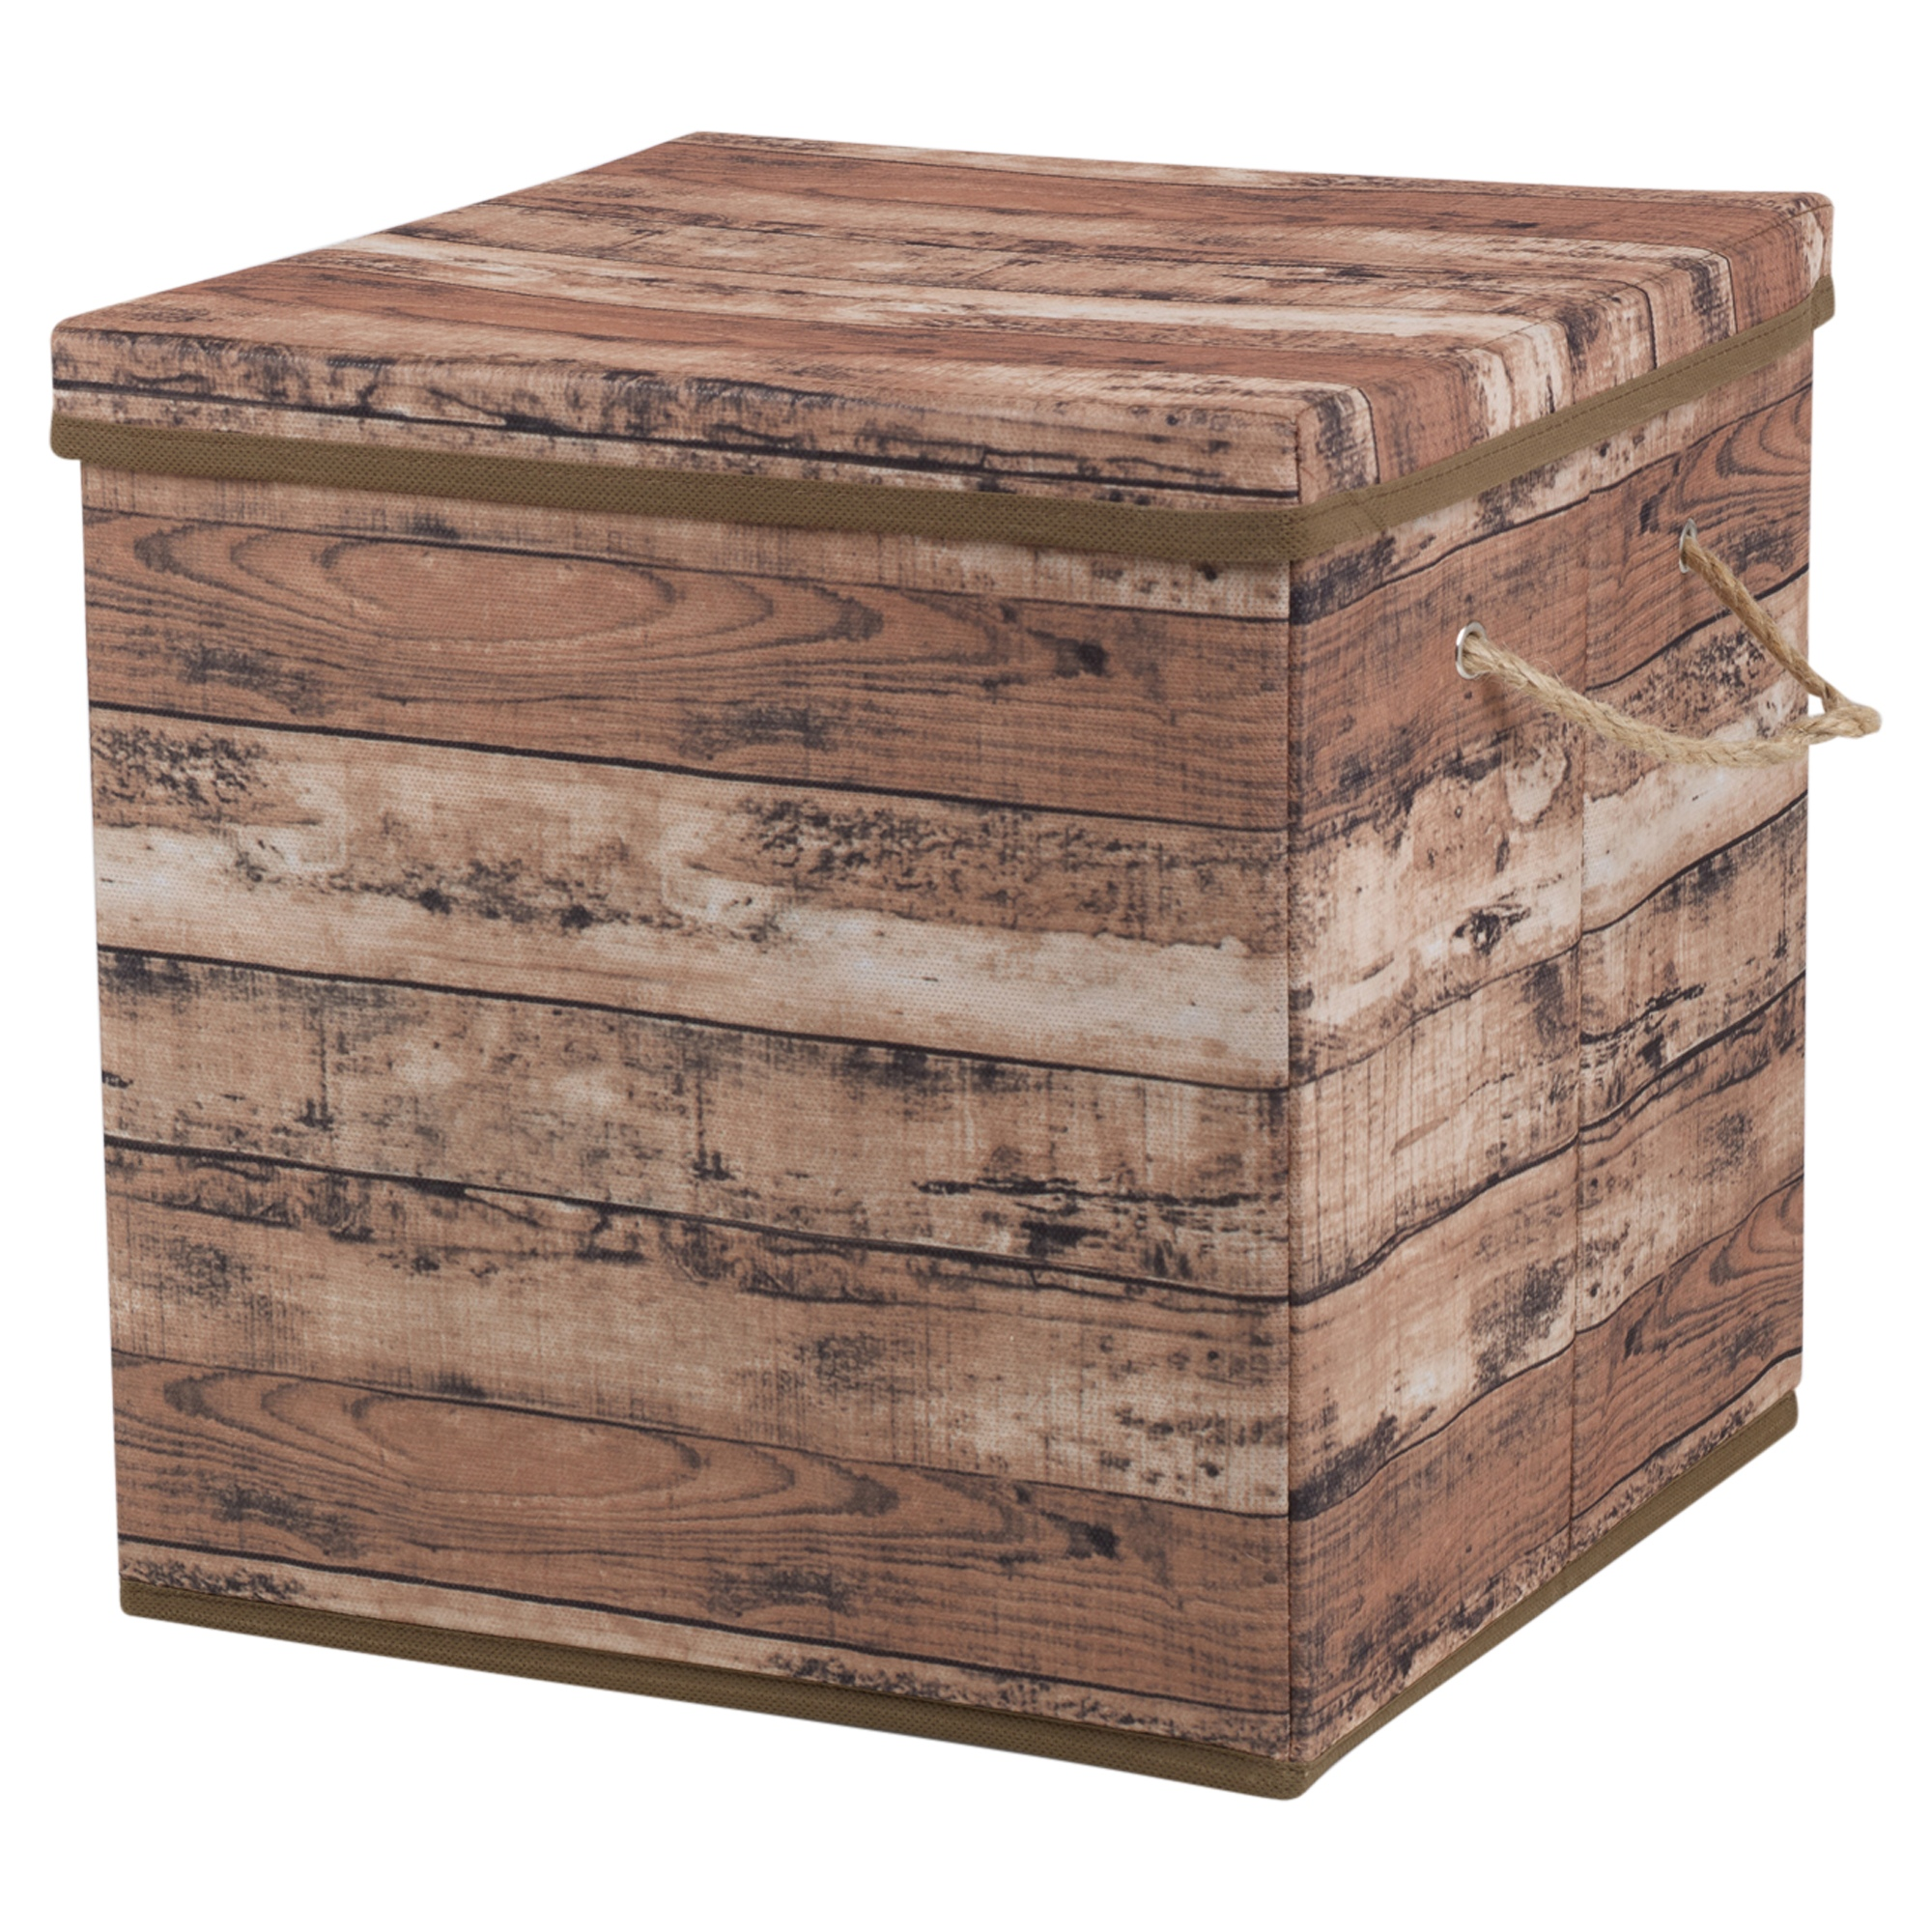 Wood design storage box handles rope lidded collapsible